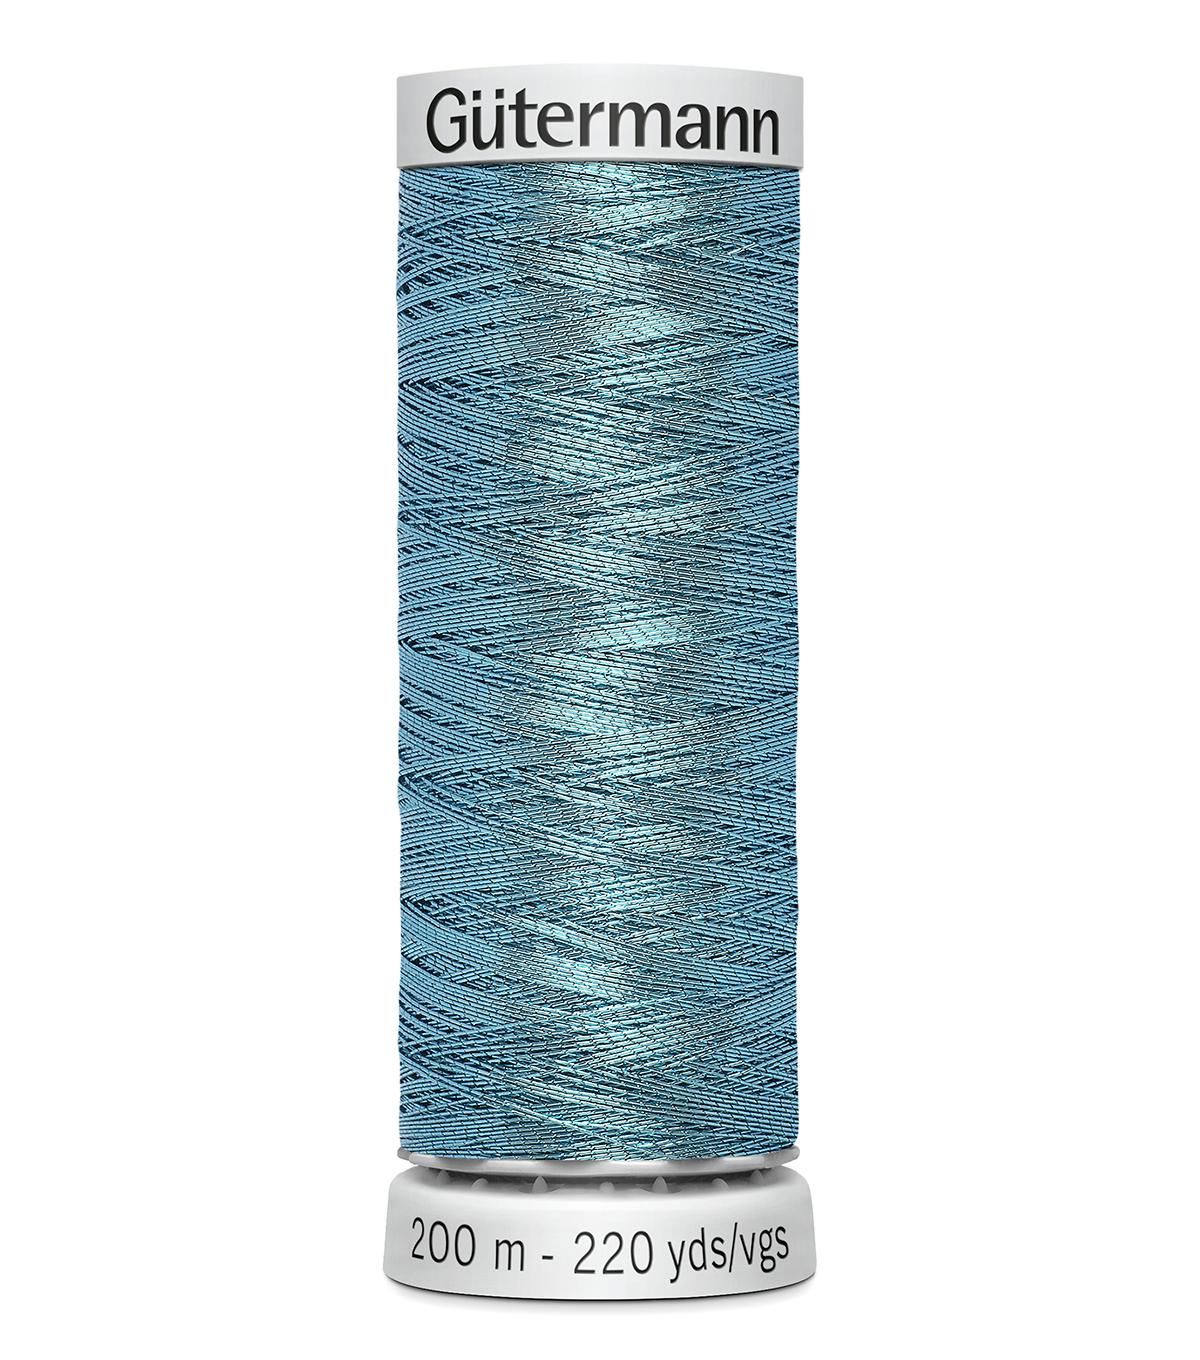 Gutermann 200M Dekor Thread, 200m Dekor Metallic-light Blue